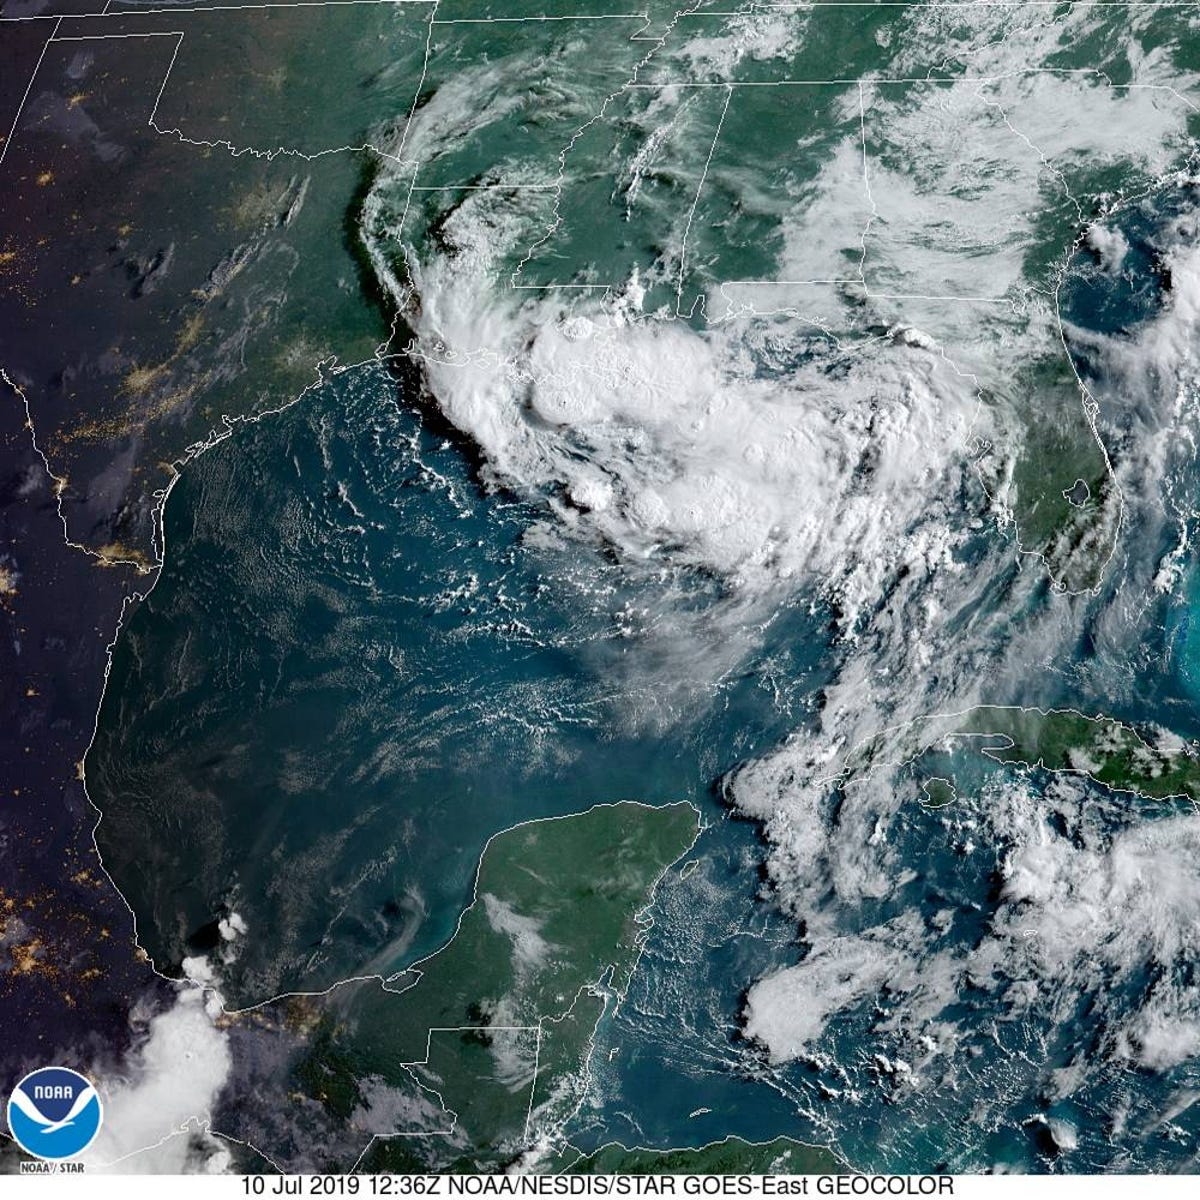 Hurricane, tropical storm, depression: System brewing along